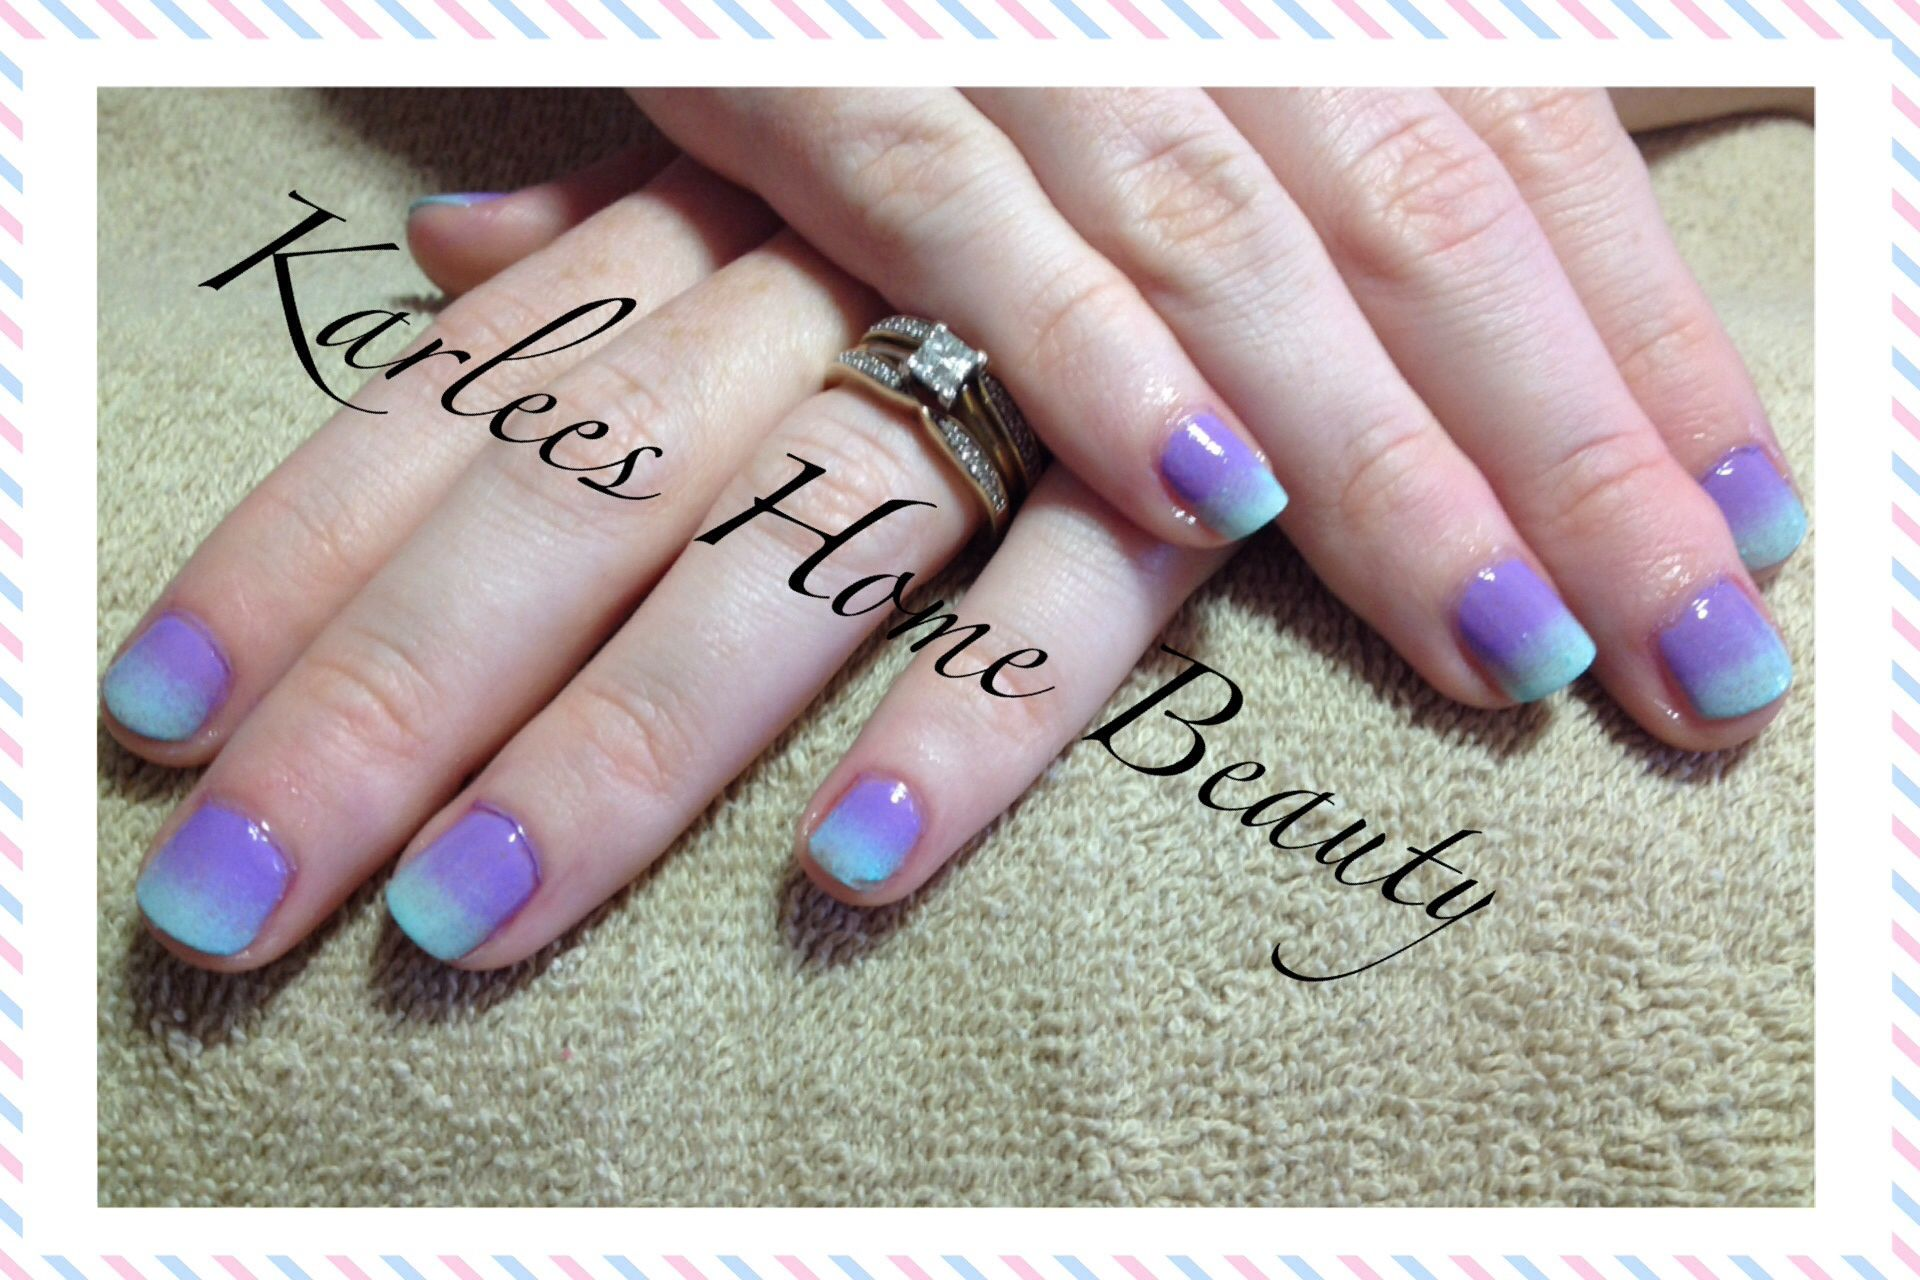 Colour Fade Sponging Nail Art Using Chad Prevost Color Pastel